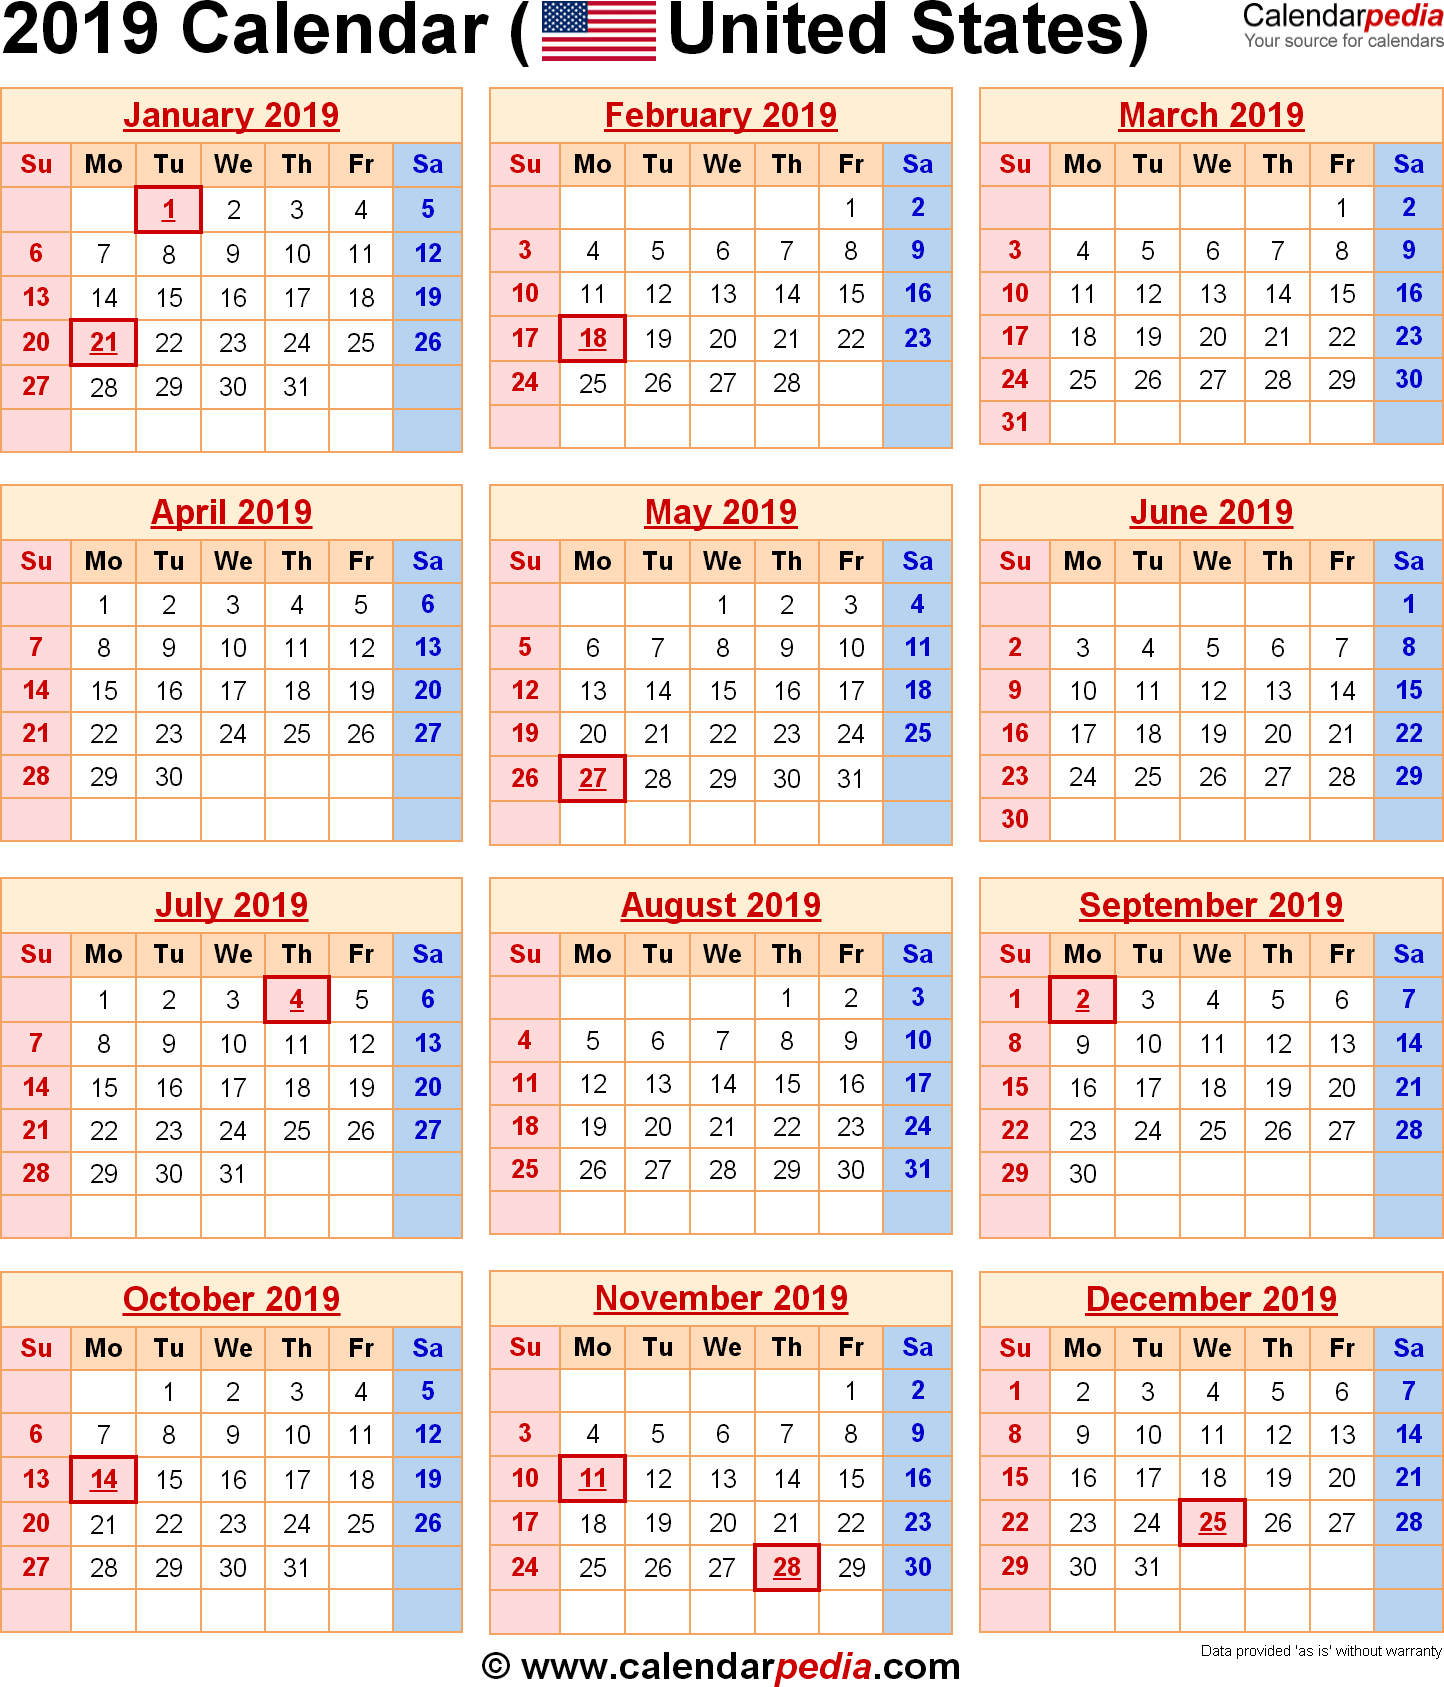 2019 Calendar With Federal Holidays within Bihar Sarkar Calendar 2017